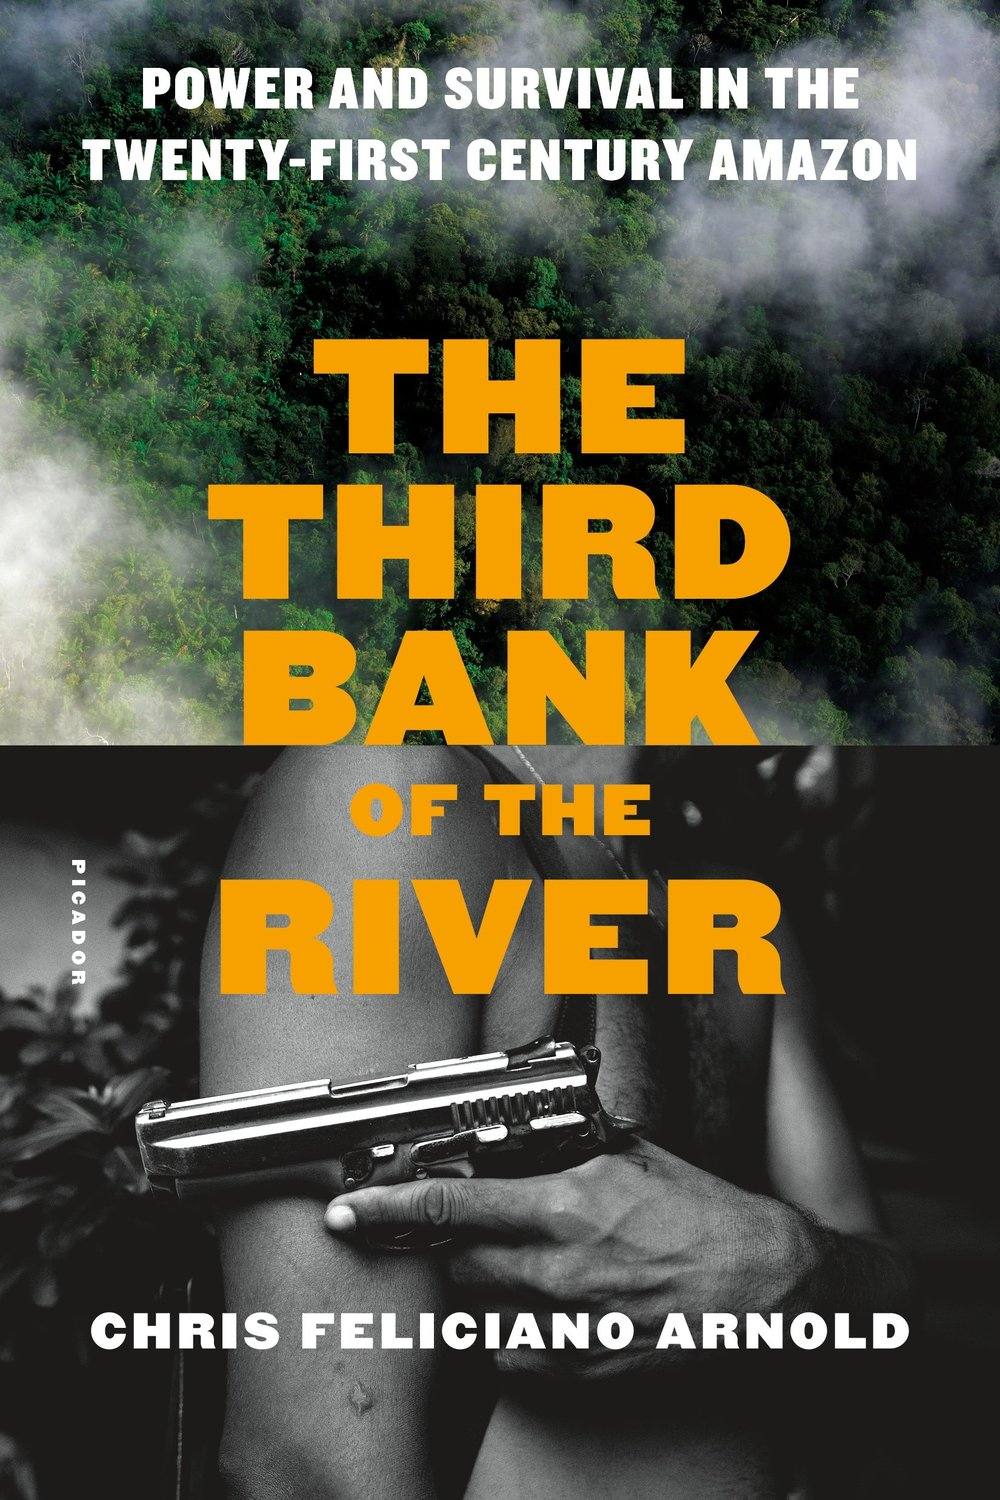 A sweeping investigation of crime and corruption in the Amazon. - The Third Bank of the River maps the human territory of one of the world's last great frontiers—and a critical battleground for human rights and the future of our planet. Grounded in rigorous first-hand reporting and in-depth research, this is a portrait of Brazil and the Amazon that is complex, bloody, and often tragic.